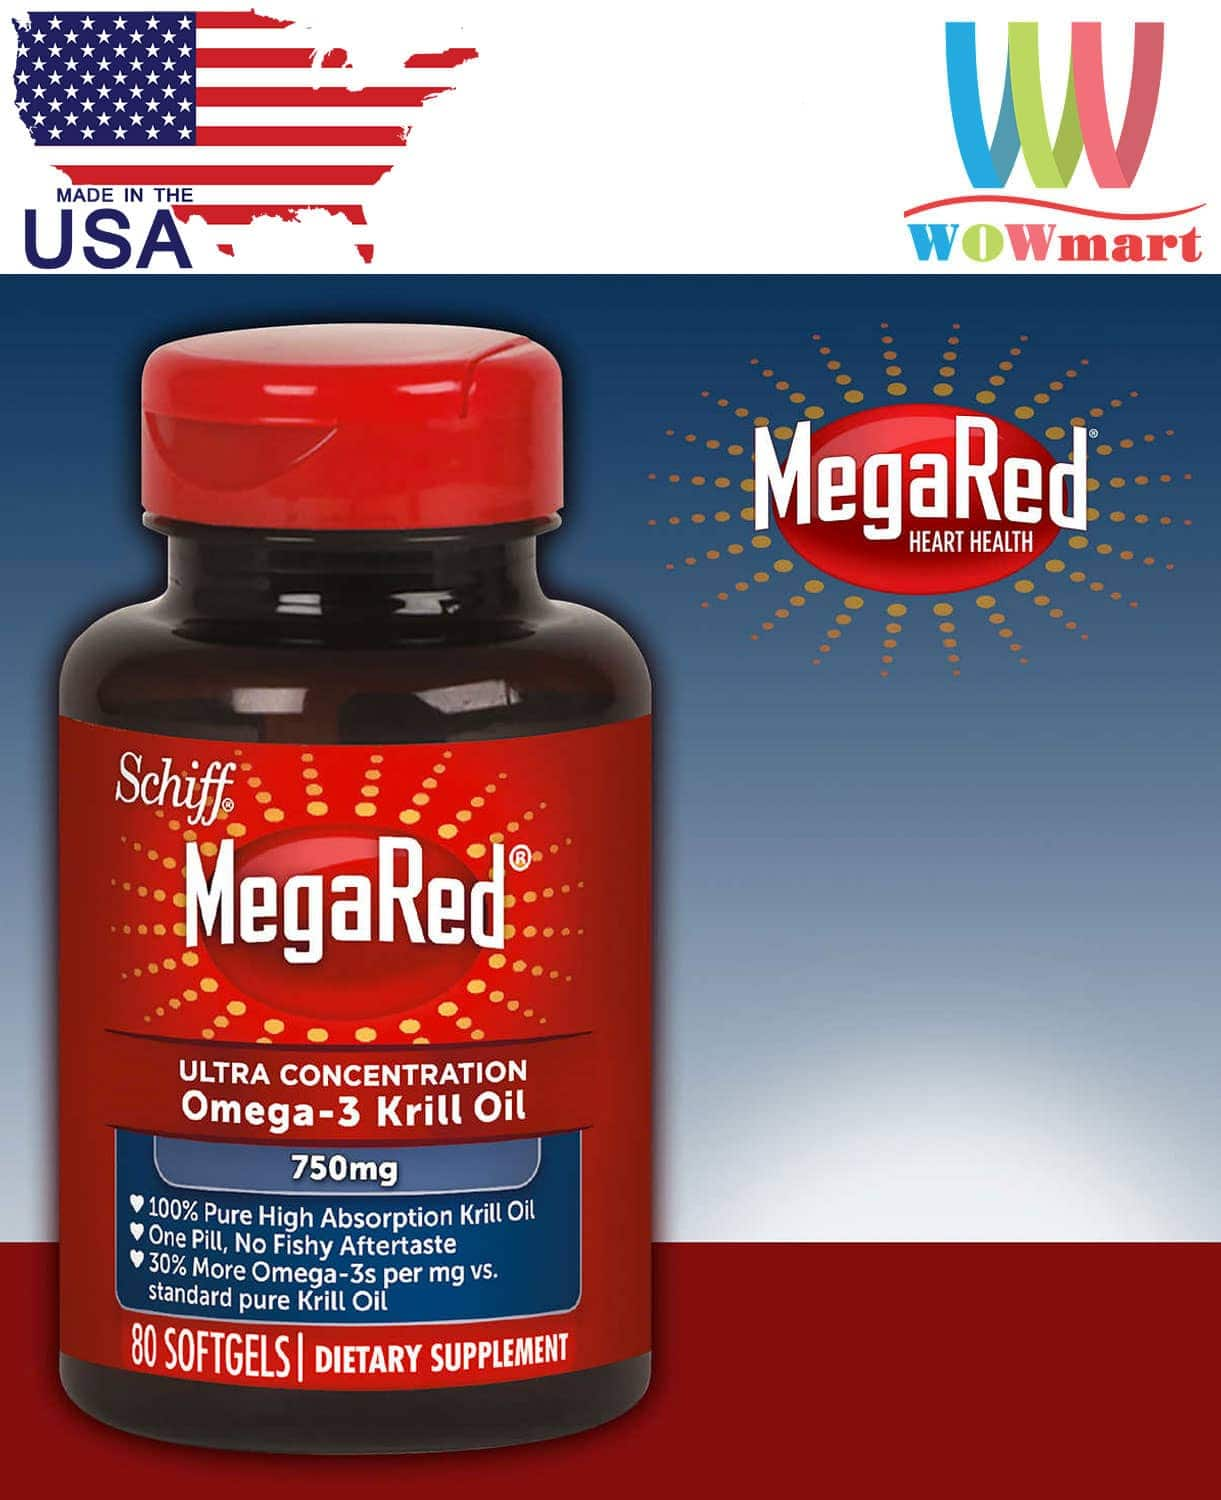 dau-tom-megared-tot-cho-tim-mach-schiff-megared-ultra-krill-oil-750mg-80-vien